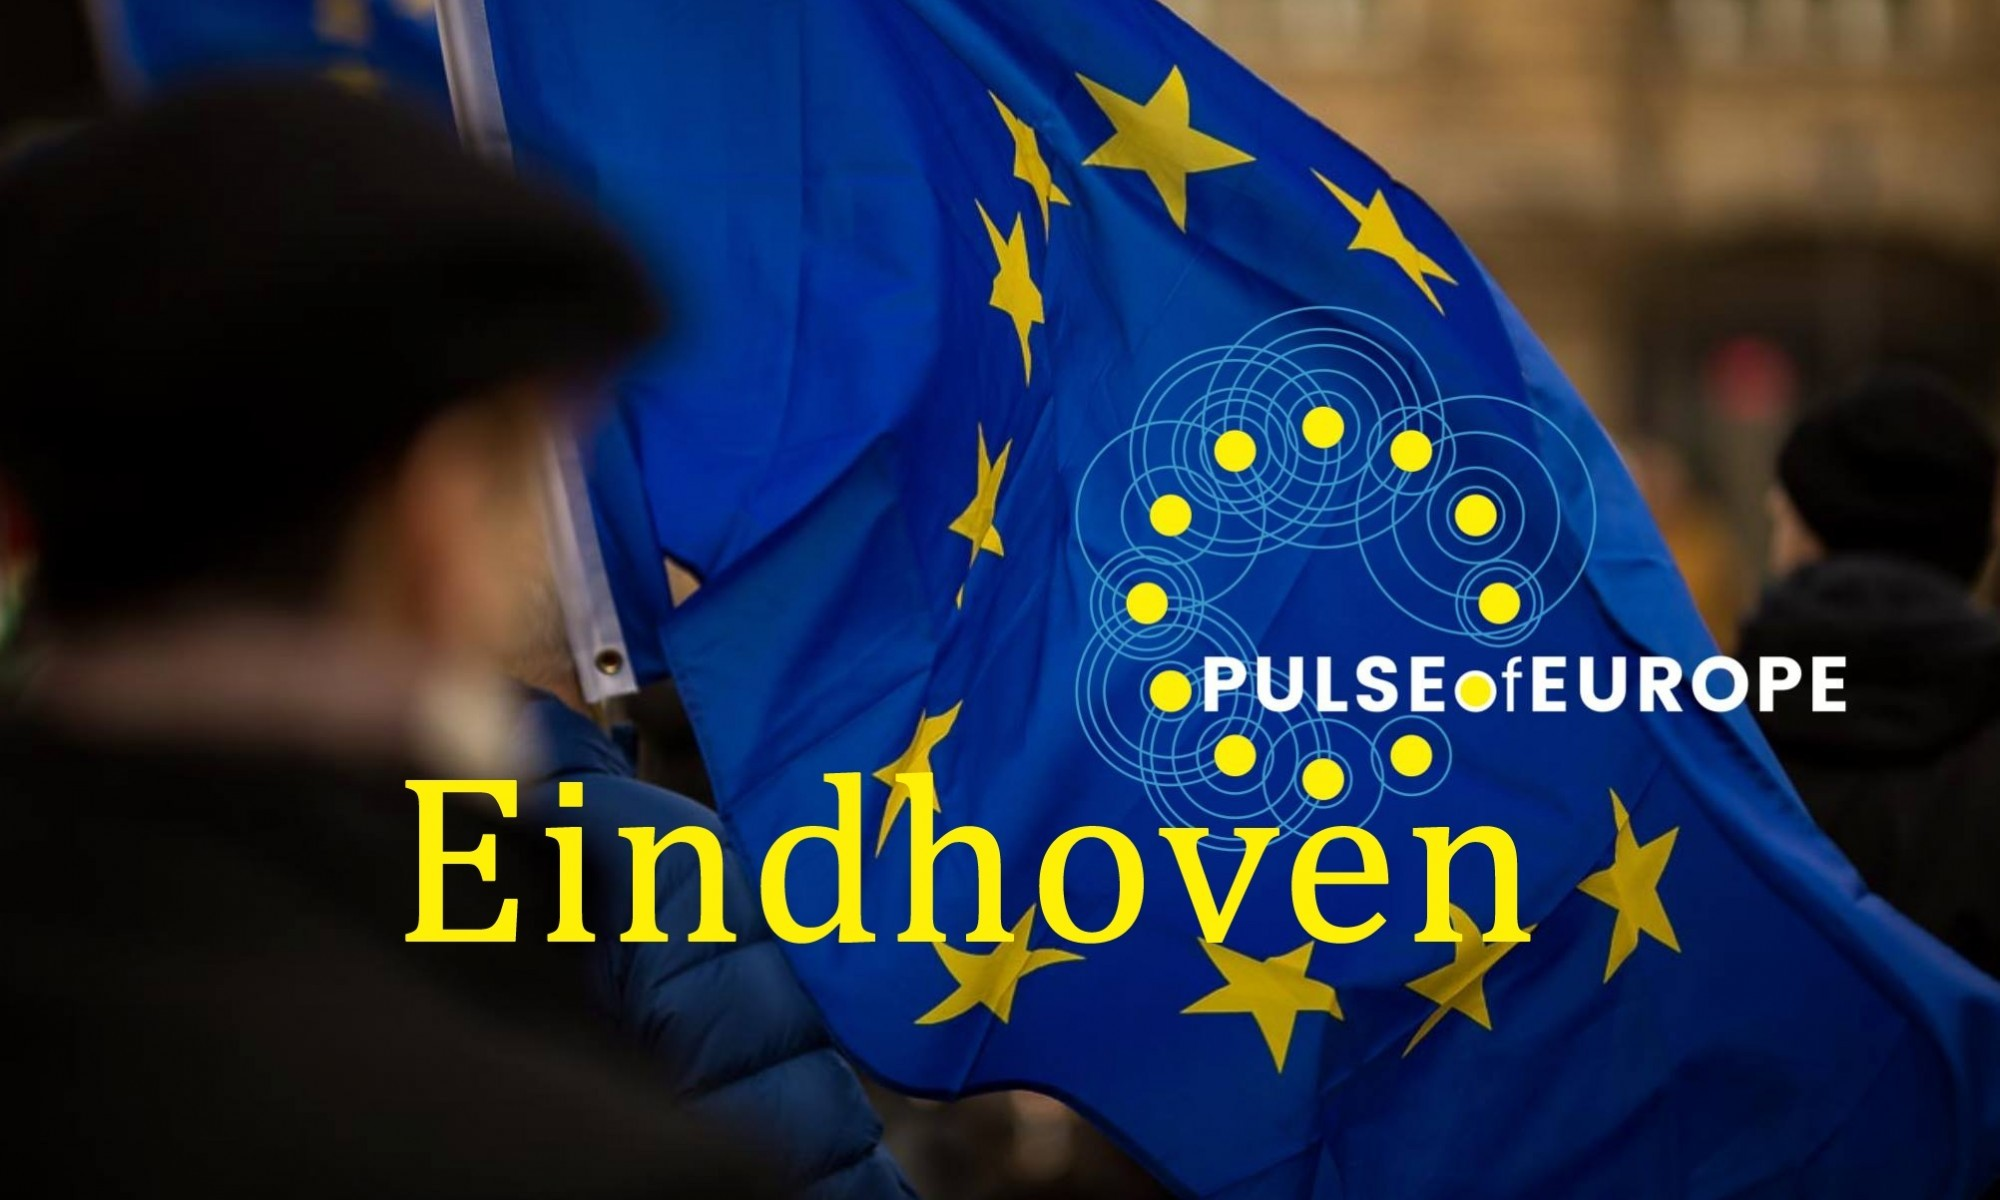 Eindhoven Pulse of Europe